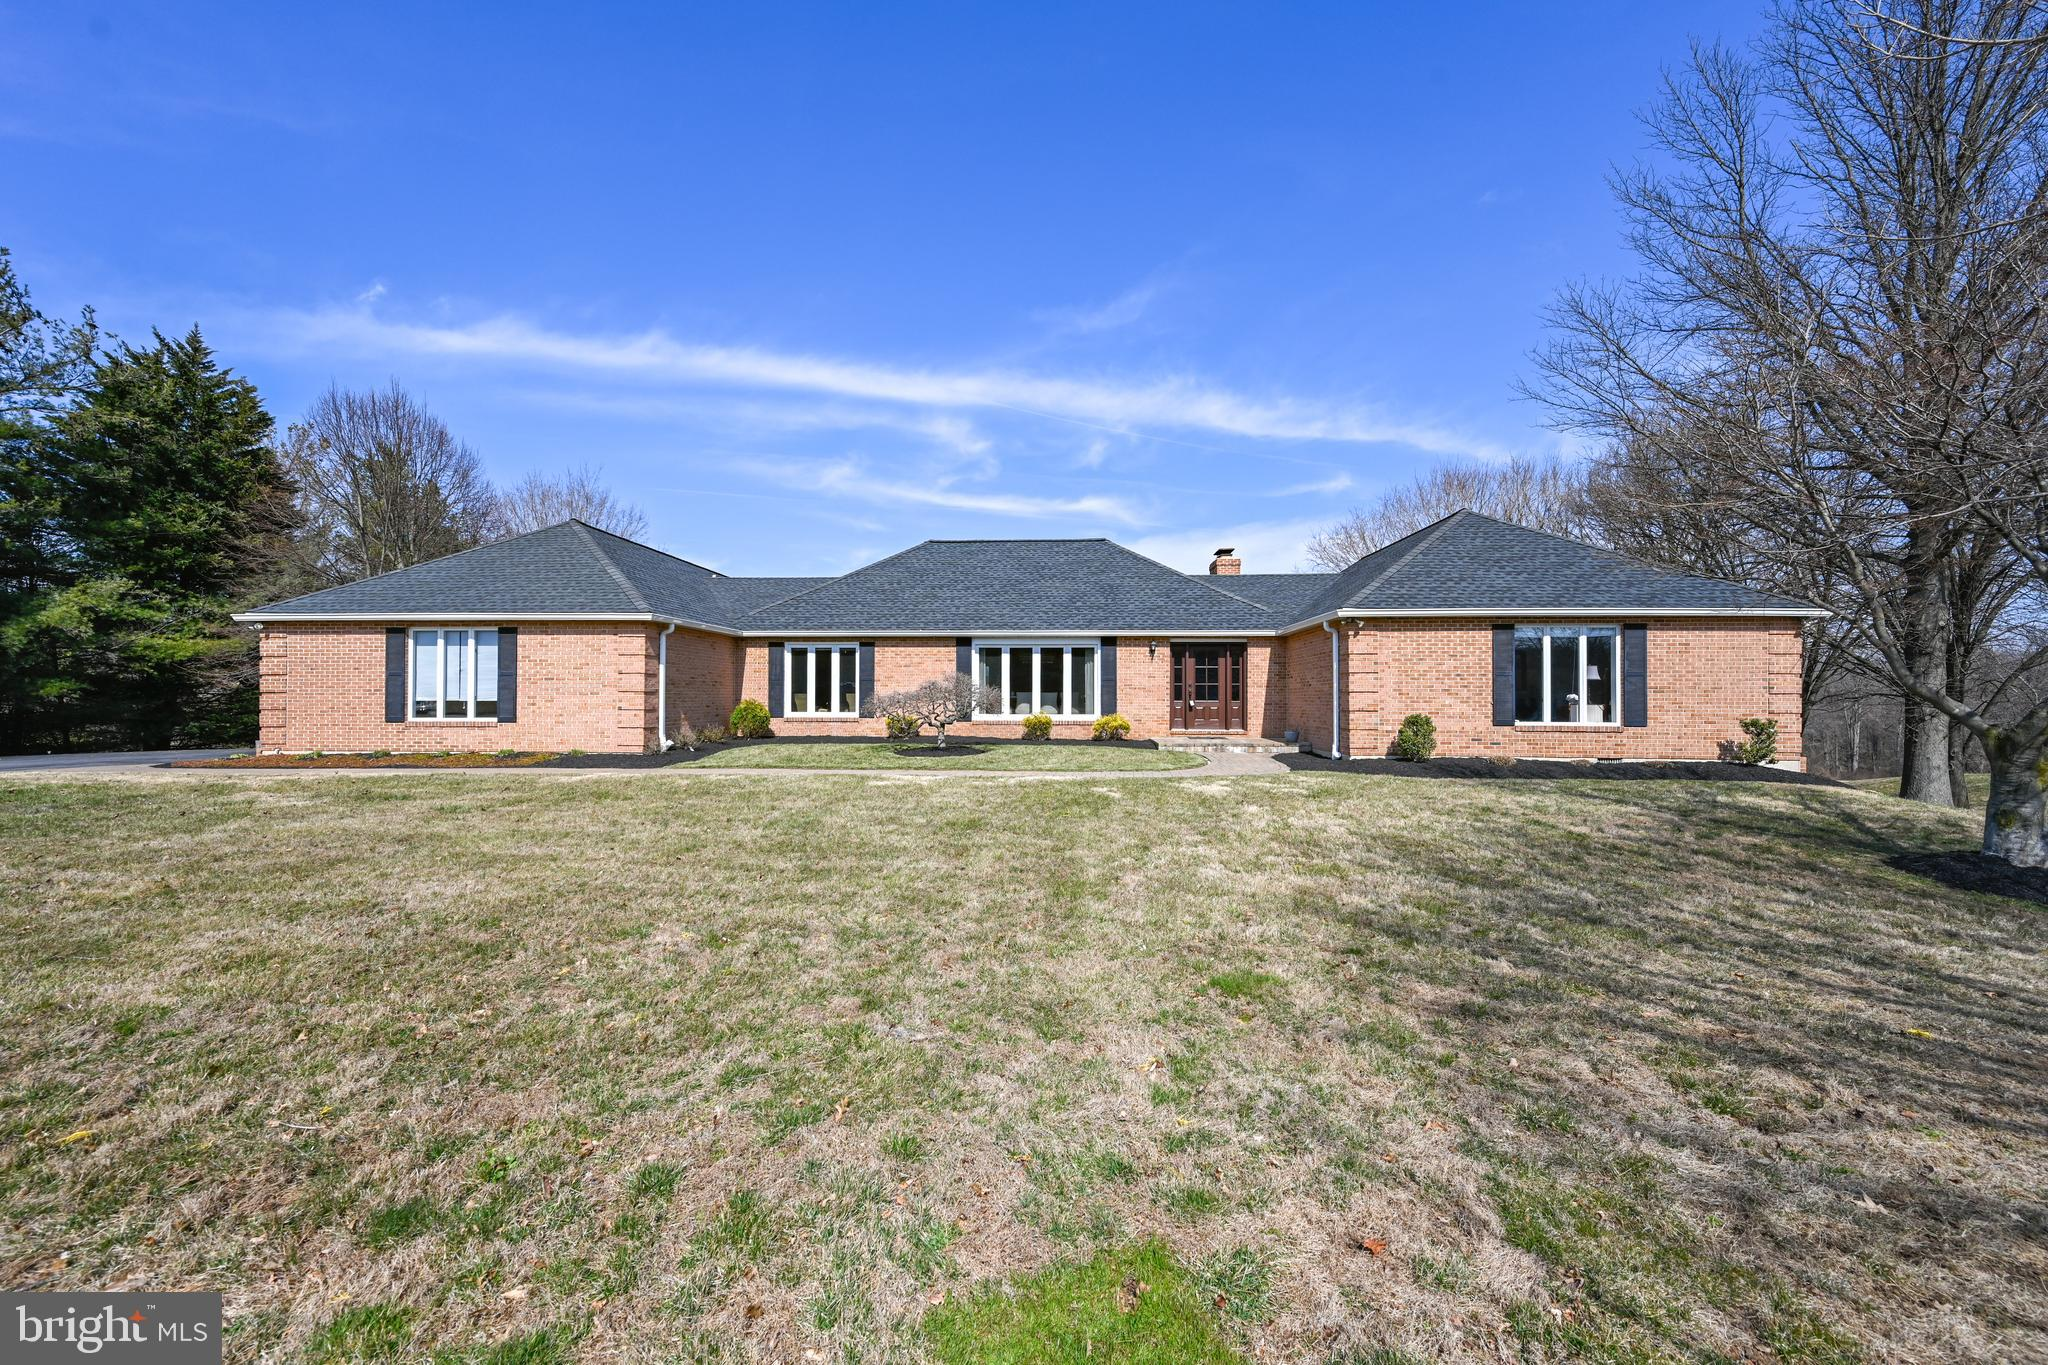 13502 ALLNUTT LANE, HIGHLAND, MD 20777